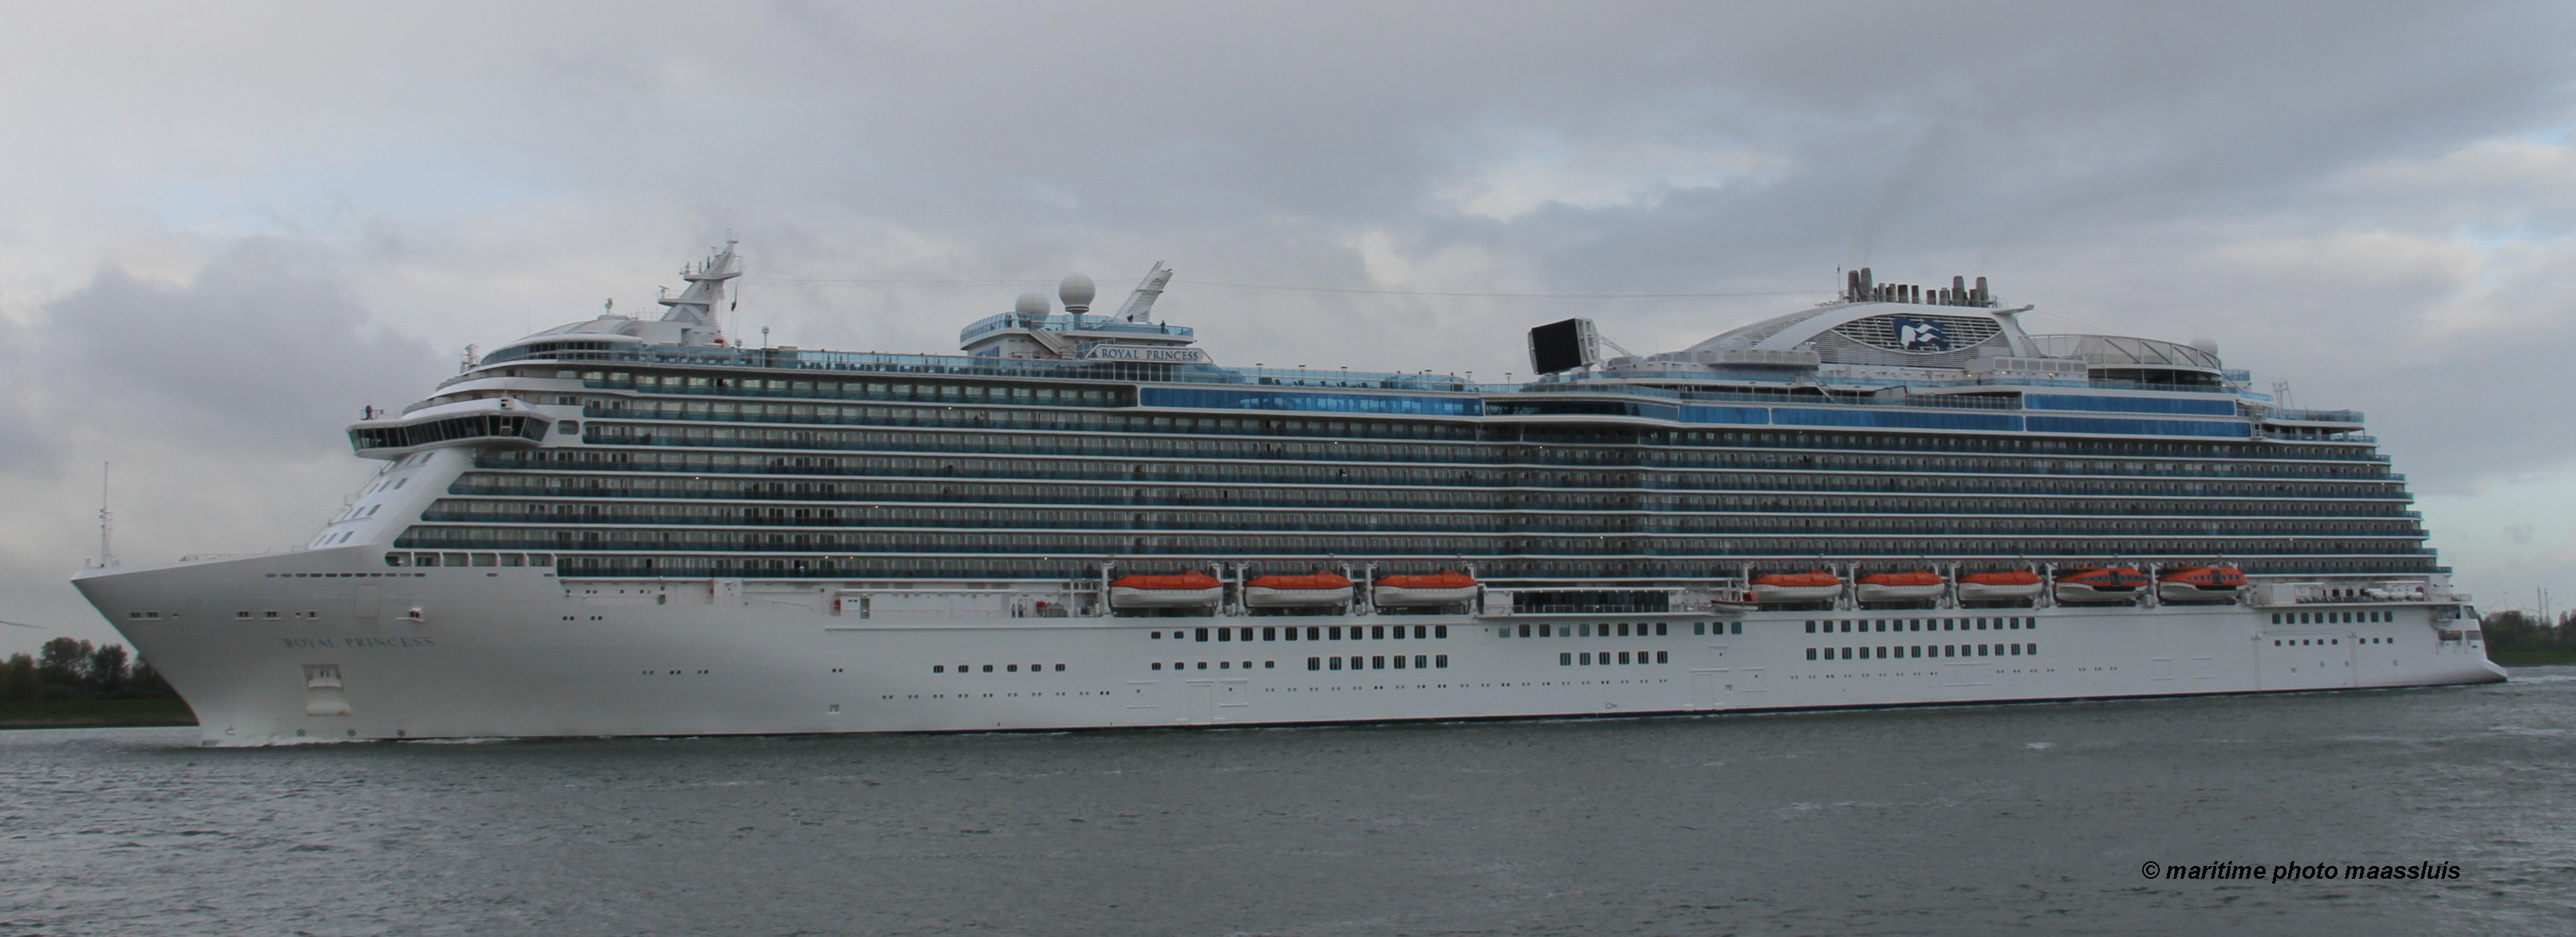 royalprincess02.jpg